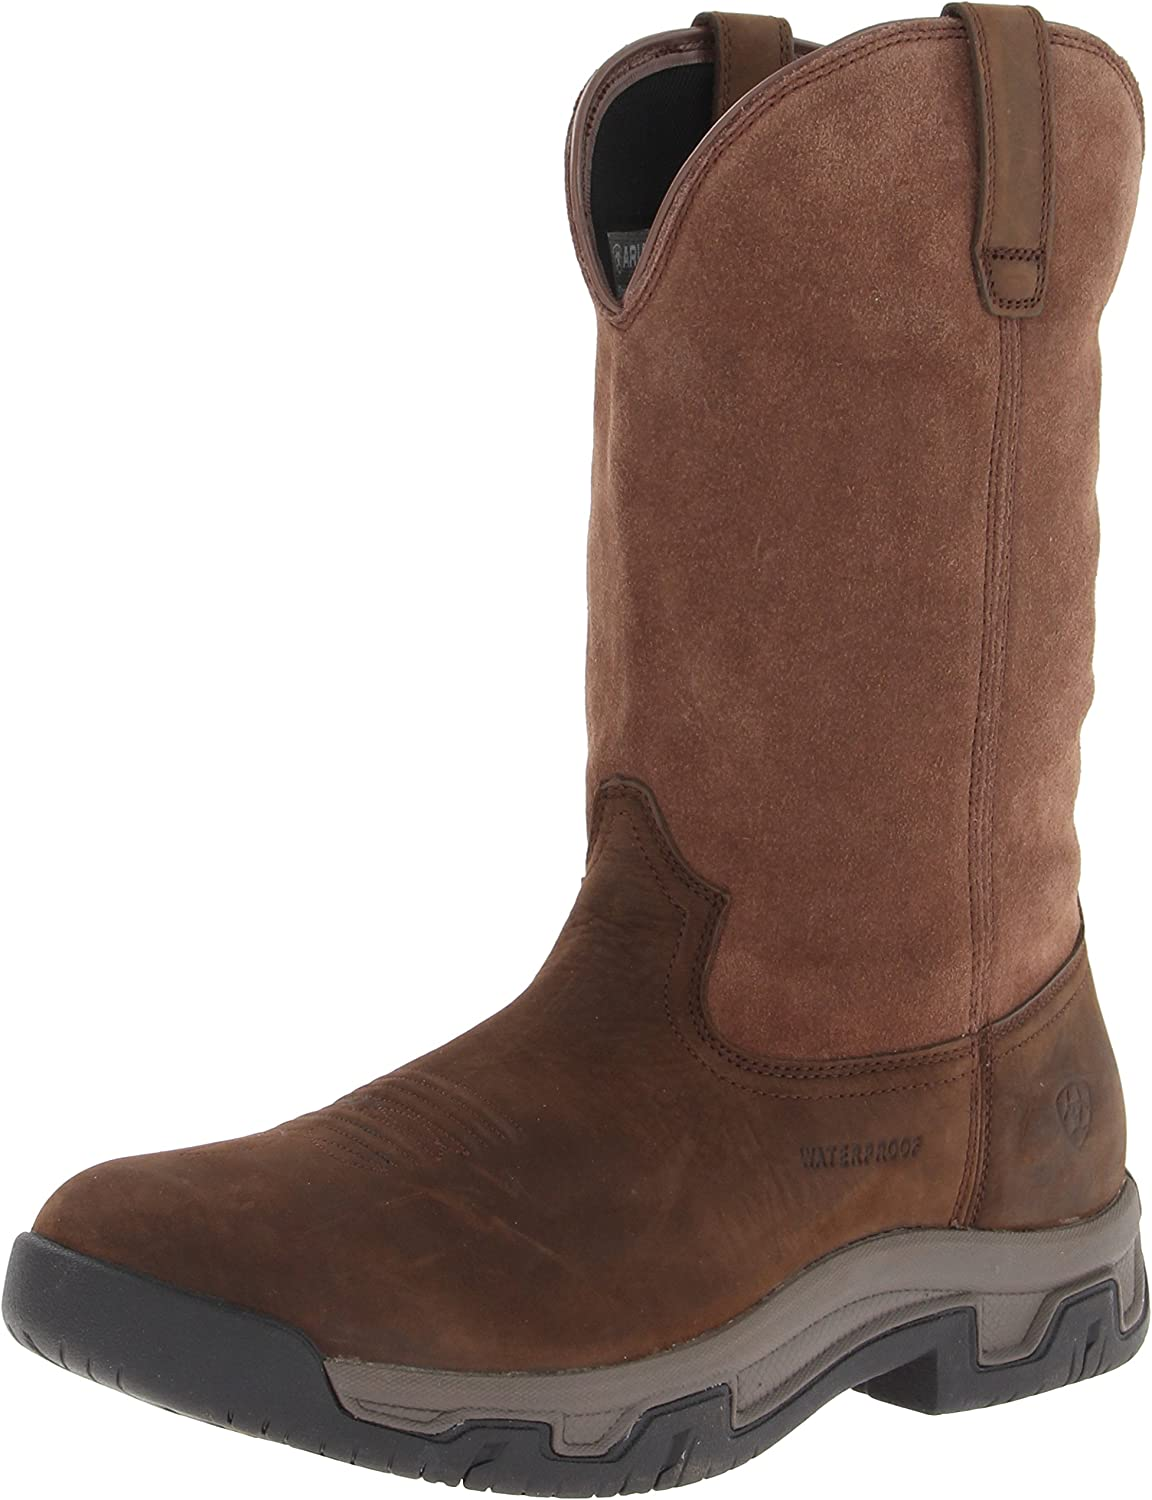 ARIAT Men's Terrain Pull On Waterproof Boot